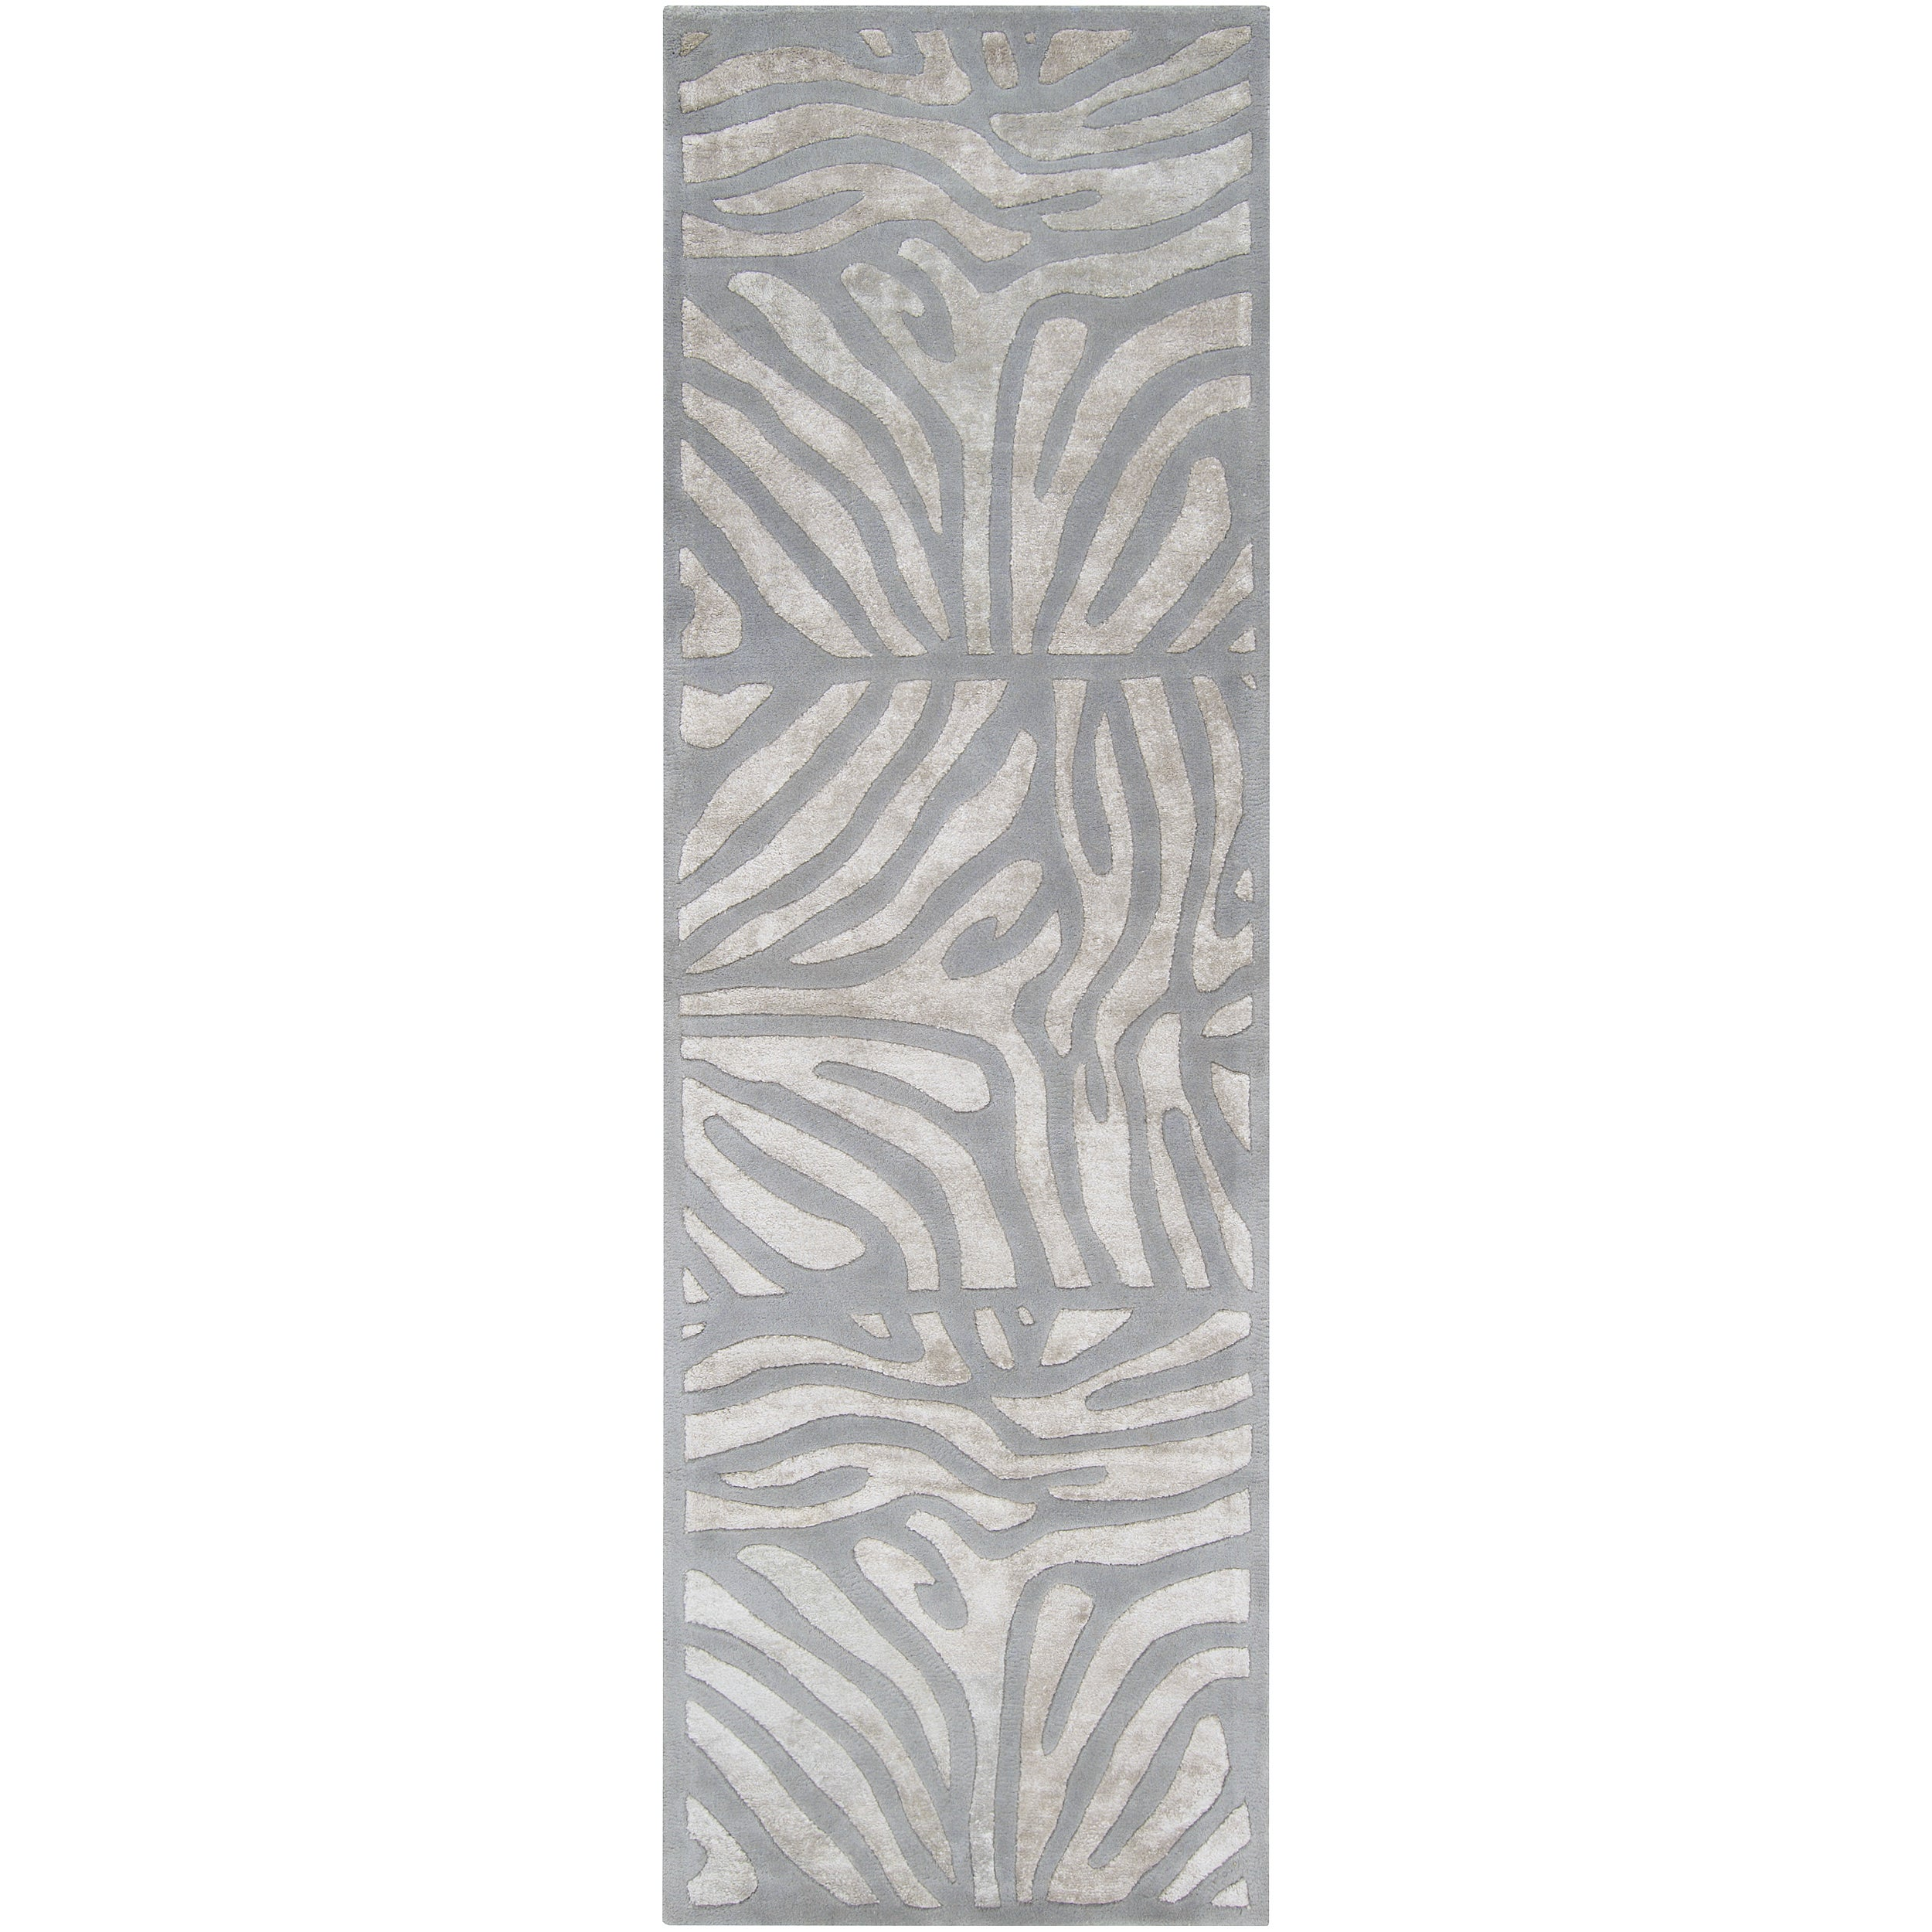 Candice Olson Hand-tufted Grey Zebra Animal Print Dali